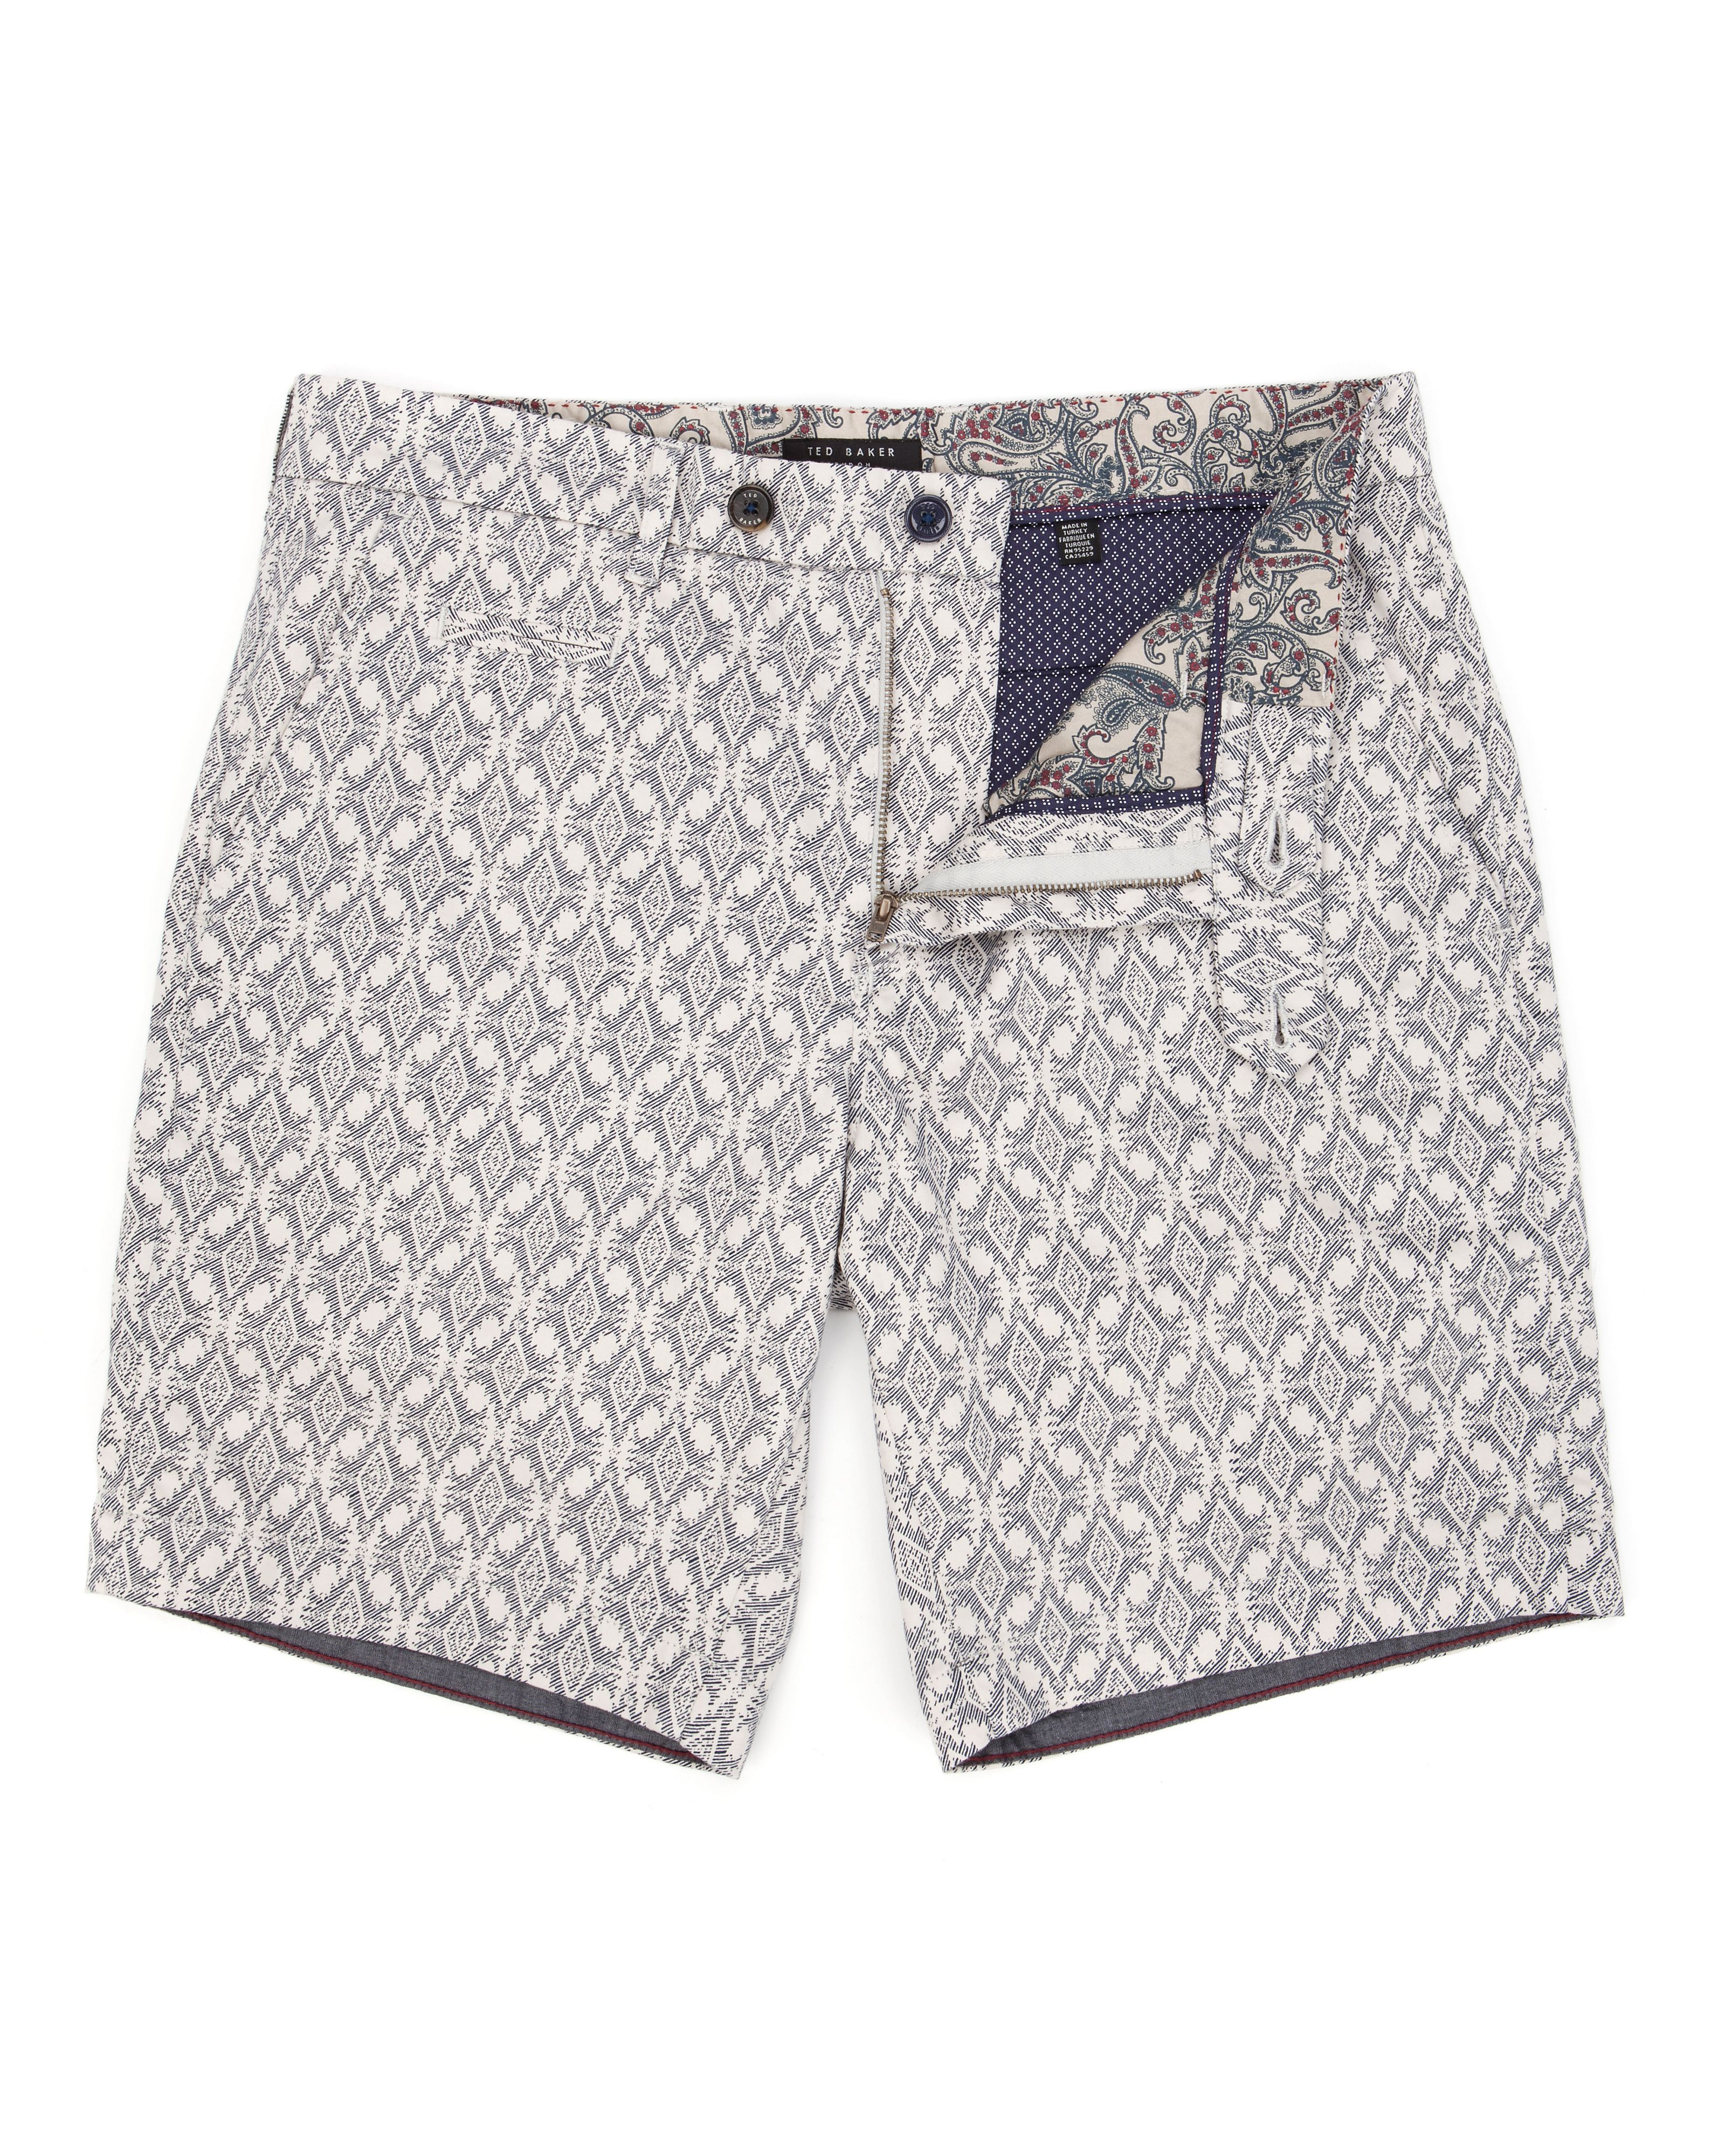 Bywater printed short